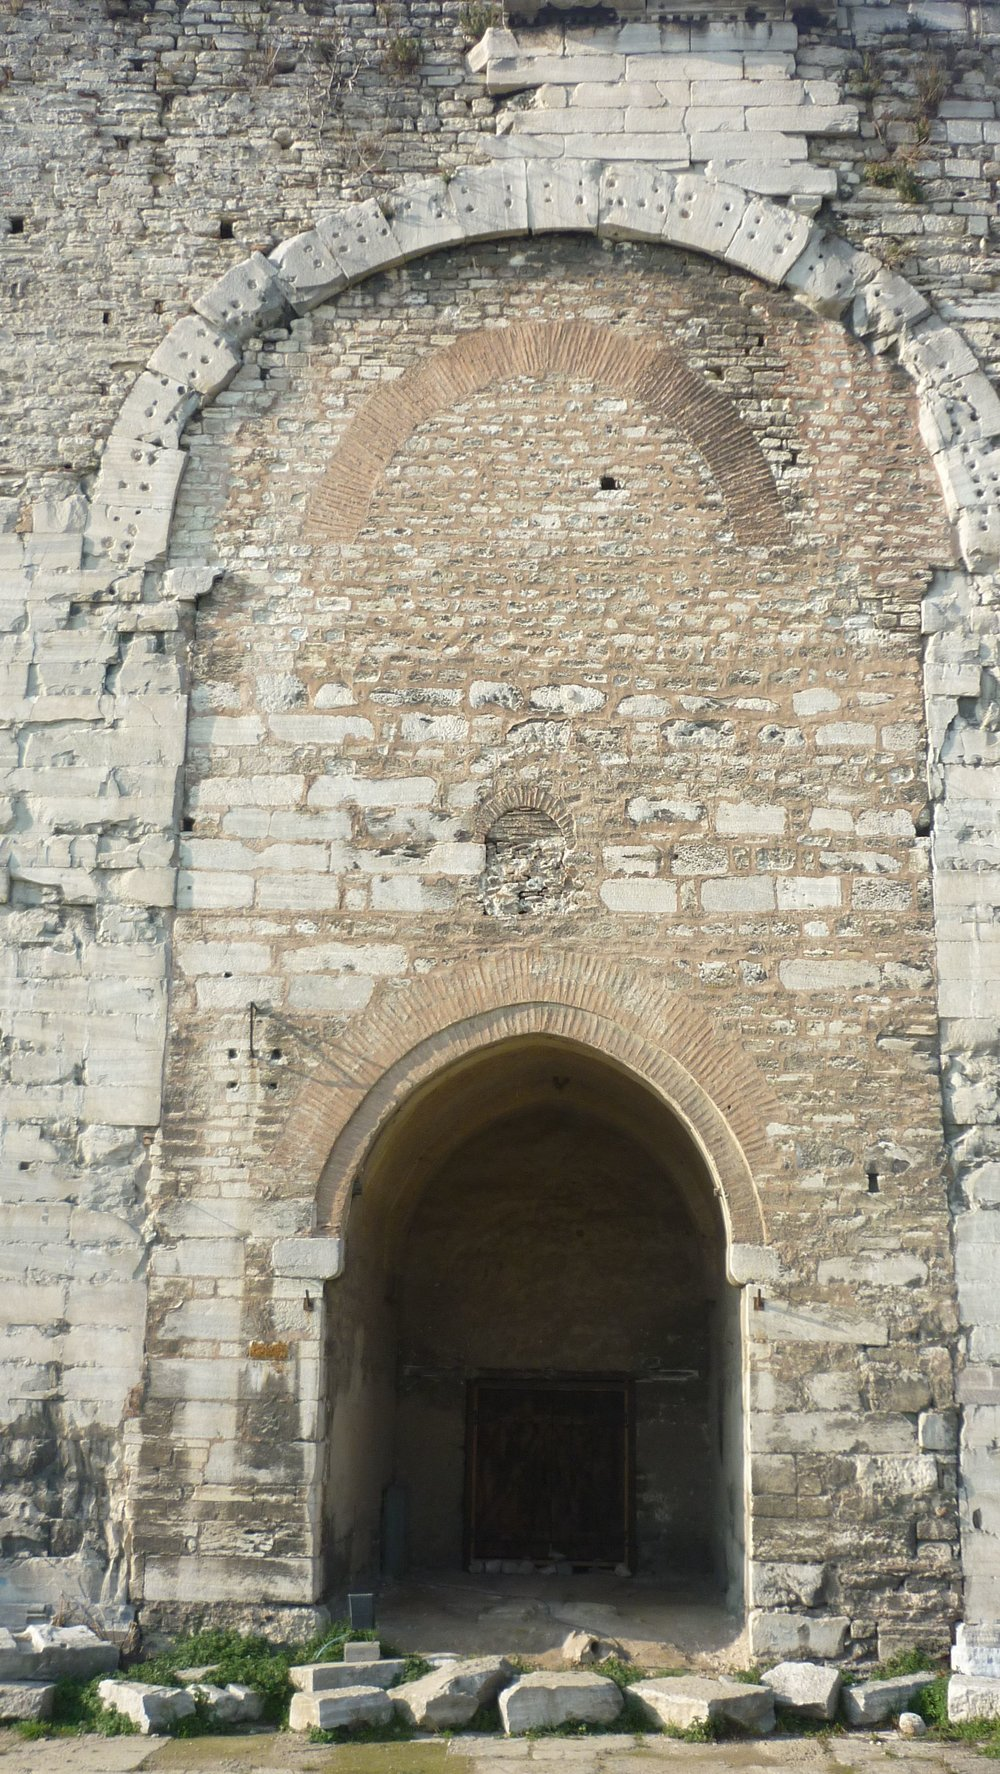 The ruin of the Golden Gate at the Theodosian Walls (photo by the author).